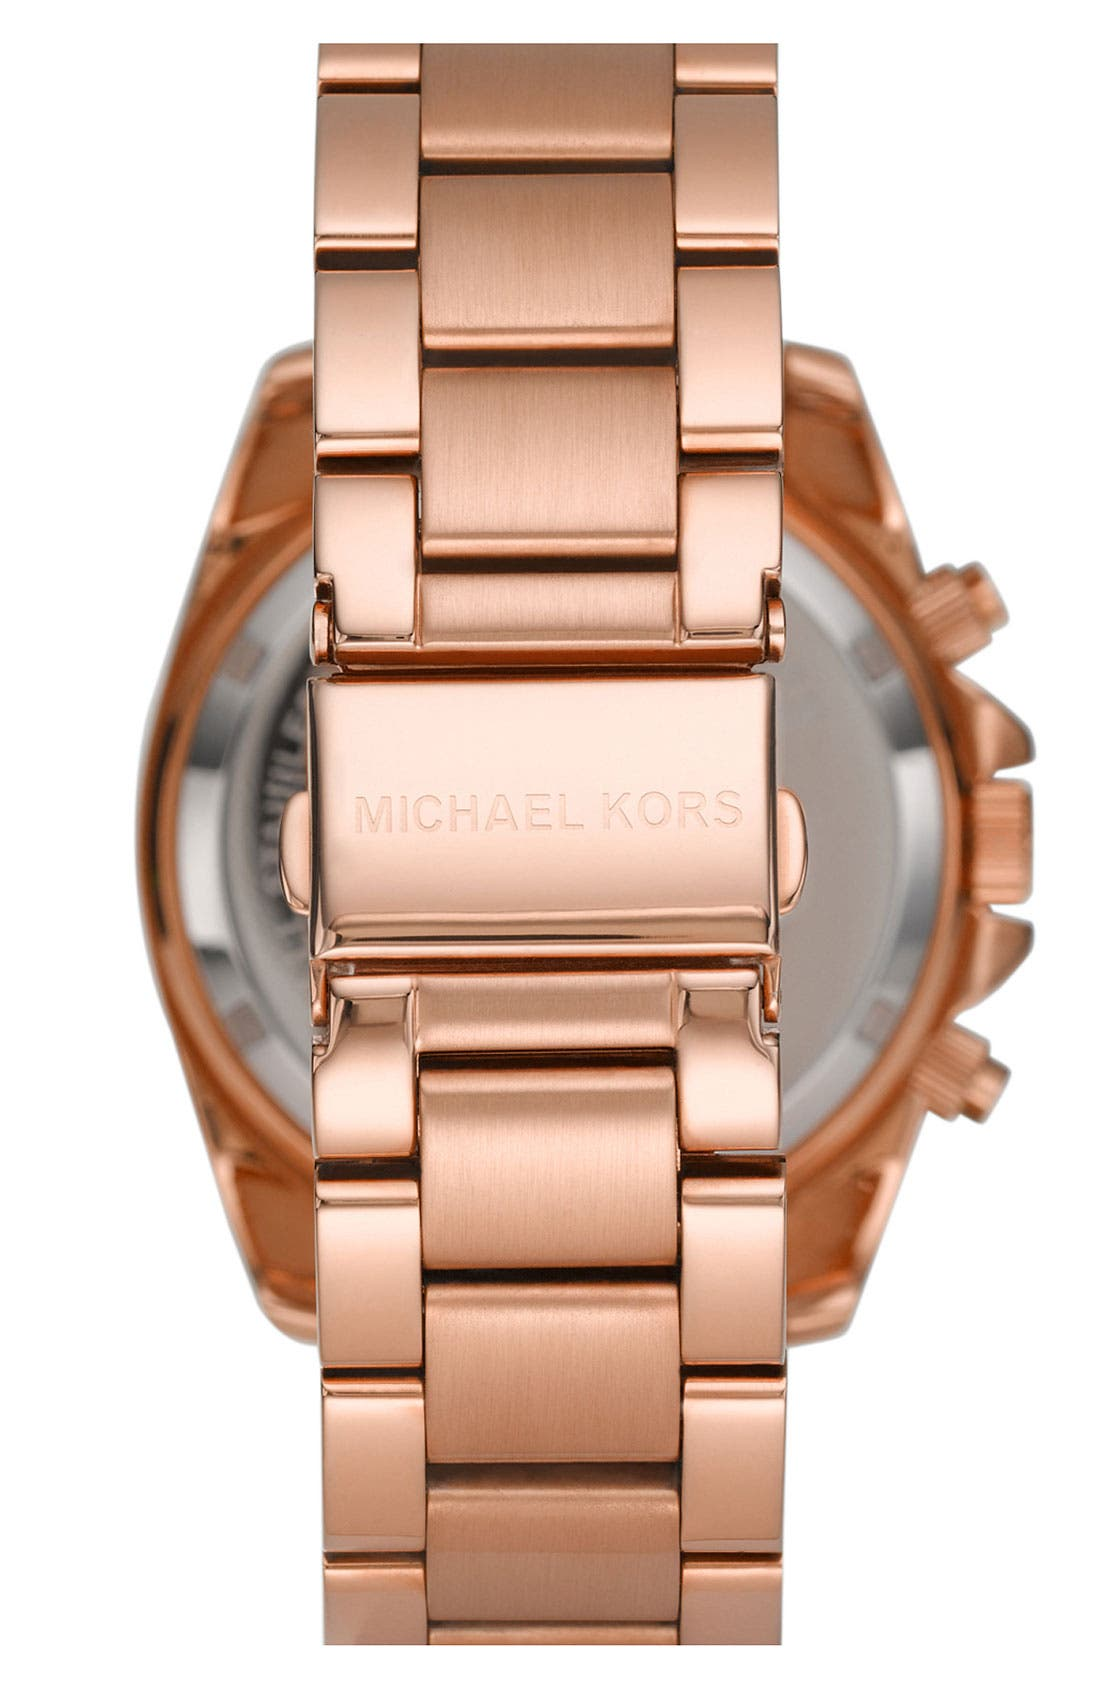 MICHAEL MICHAEL KORS,                             Michael Kors 'Runway' Rose Gold Plated Watch, 37mm,                             Alternate thumbnail 2, color,                             710